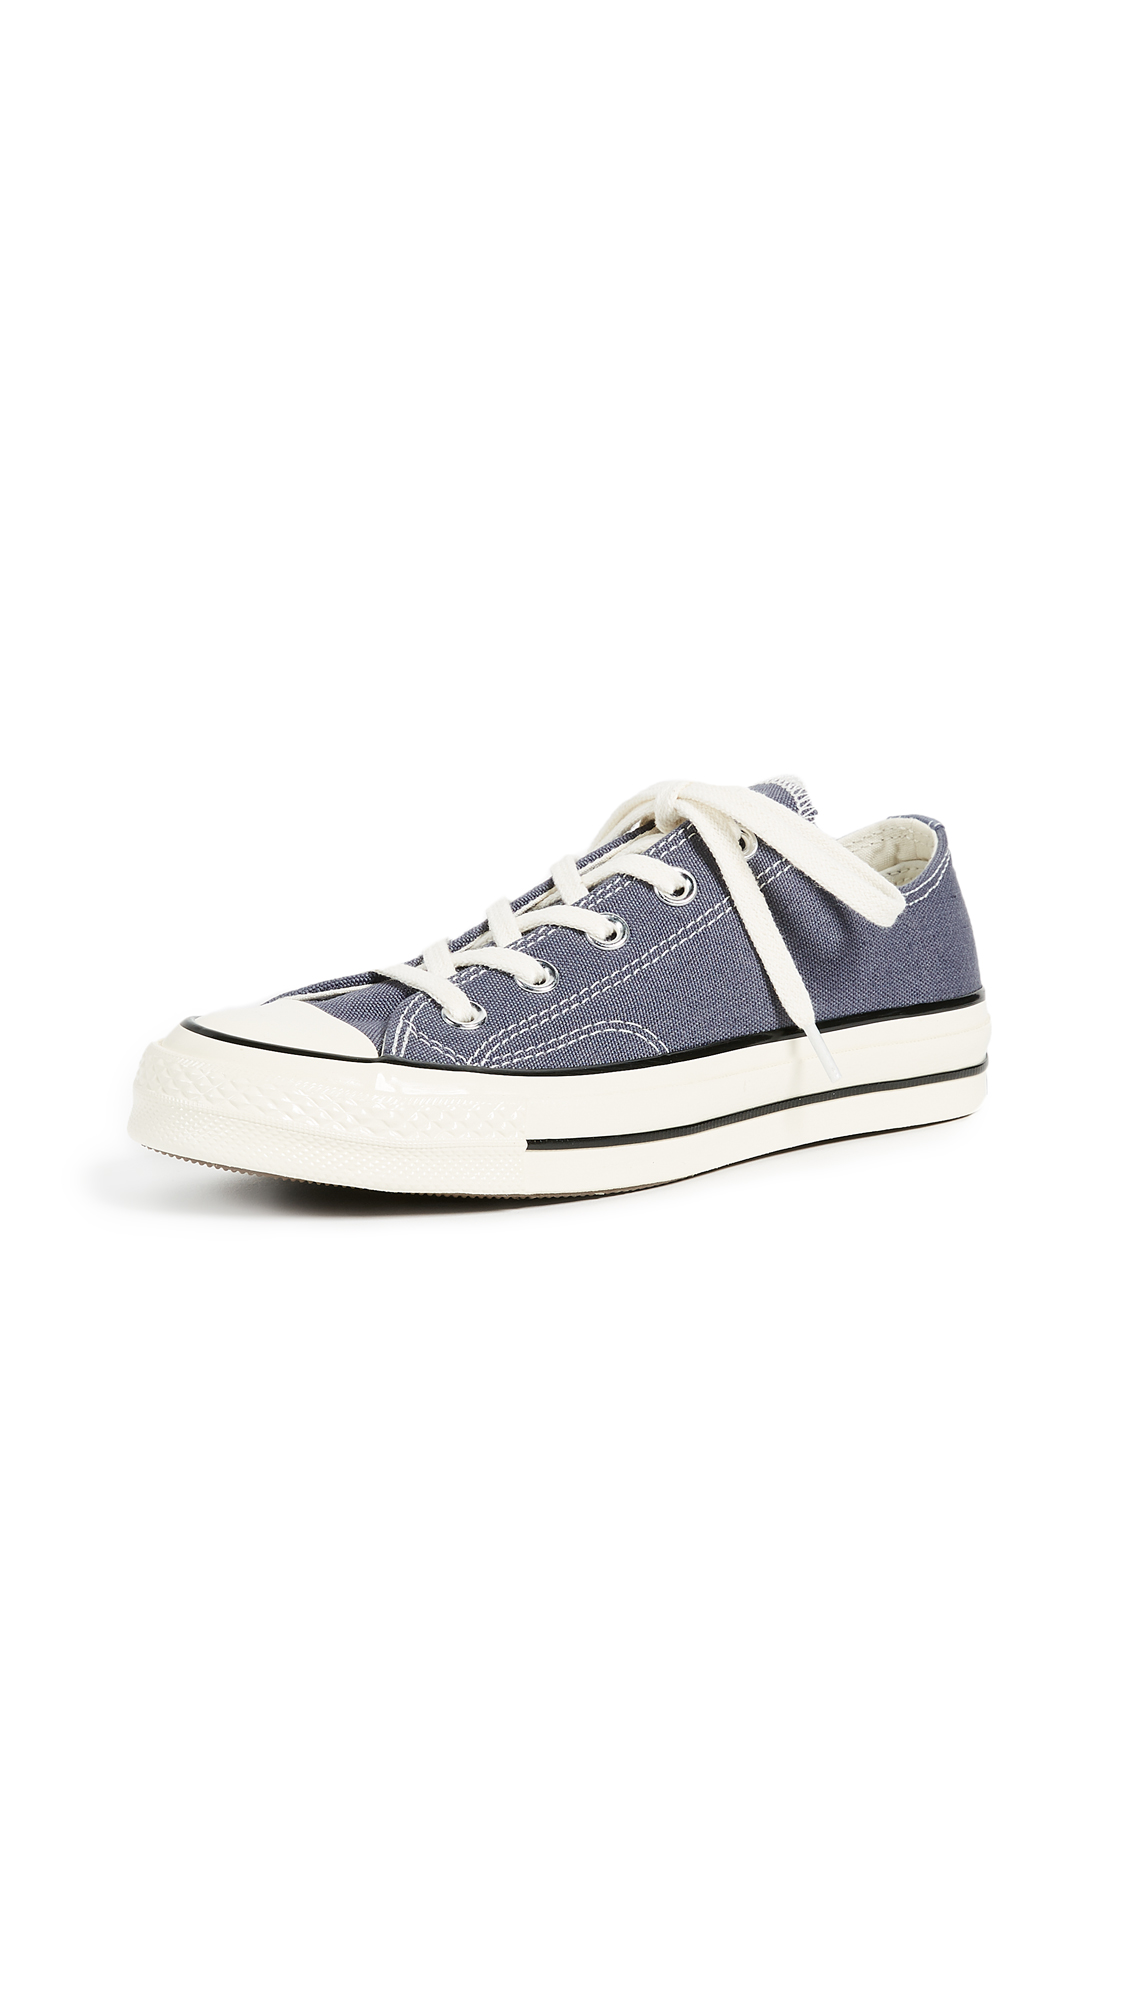 Converse Chuck Taylor 70 Canvas Sneakers - Light Carbon